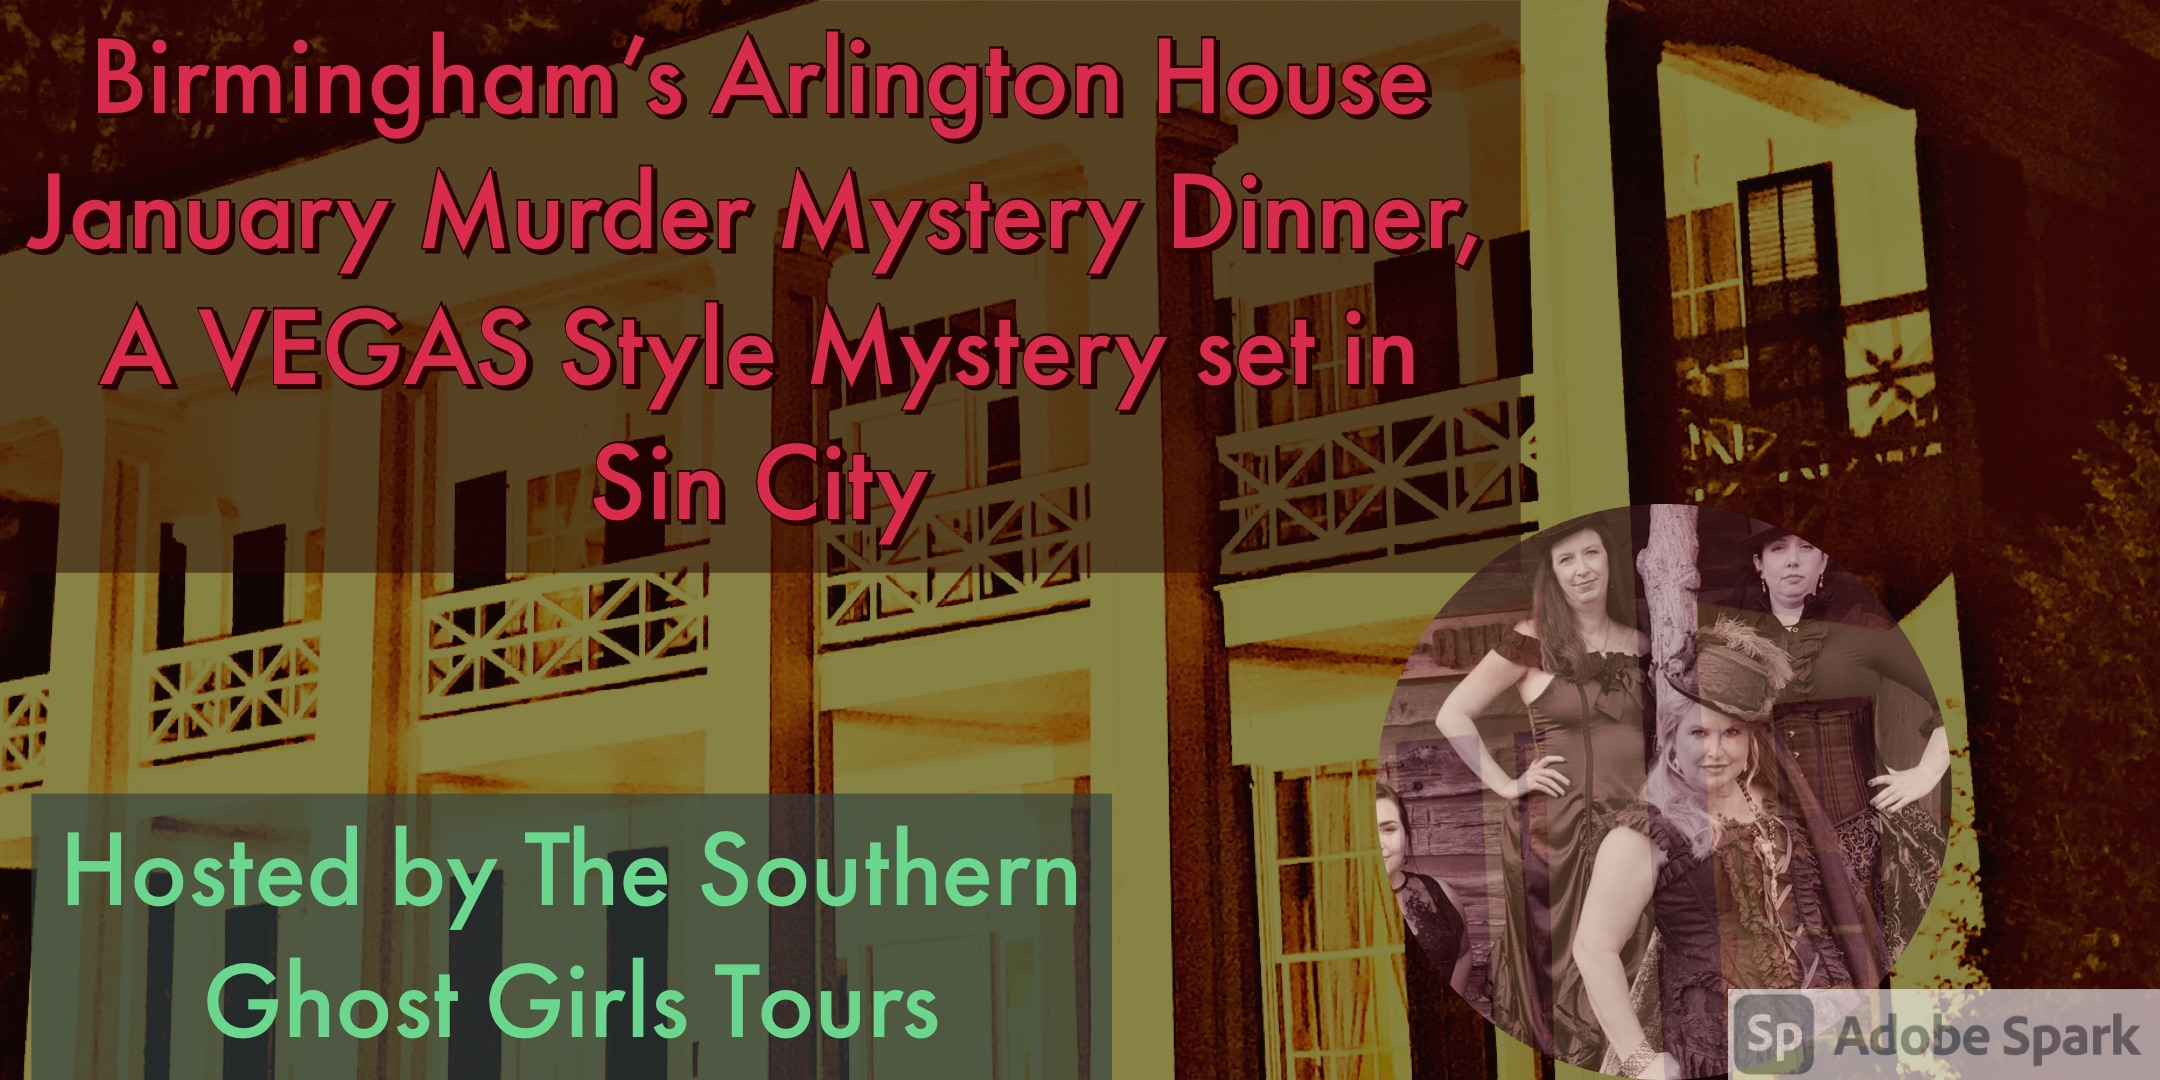 Southern Ghost Girls Tours Presents January Murder Mystery Dinner at Birmingham's Arlington House